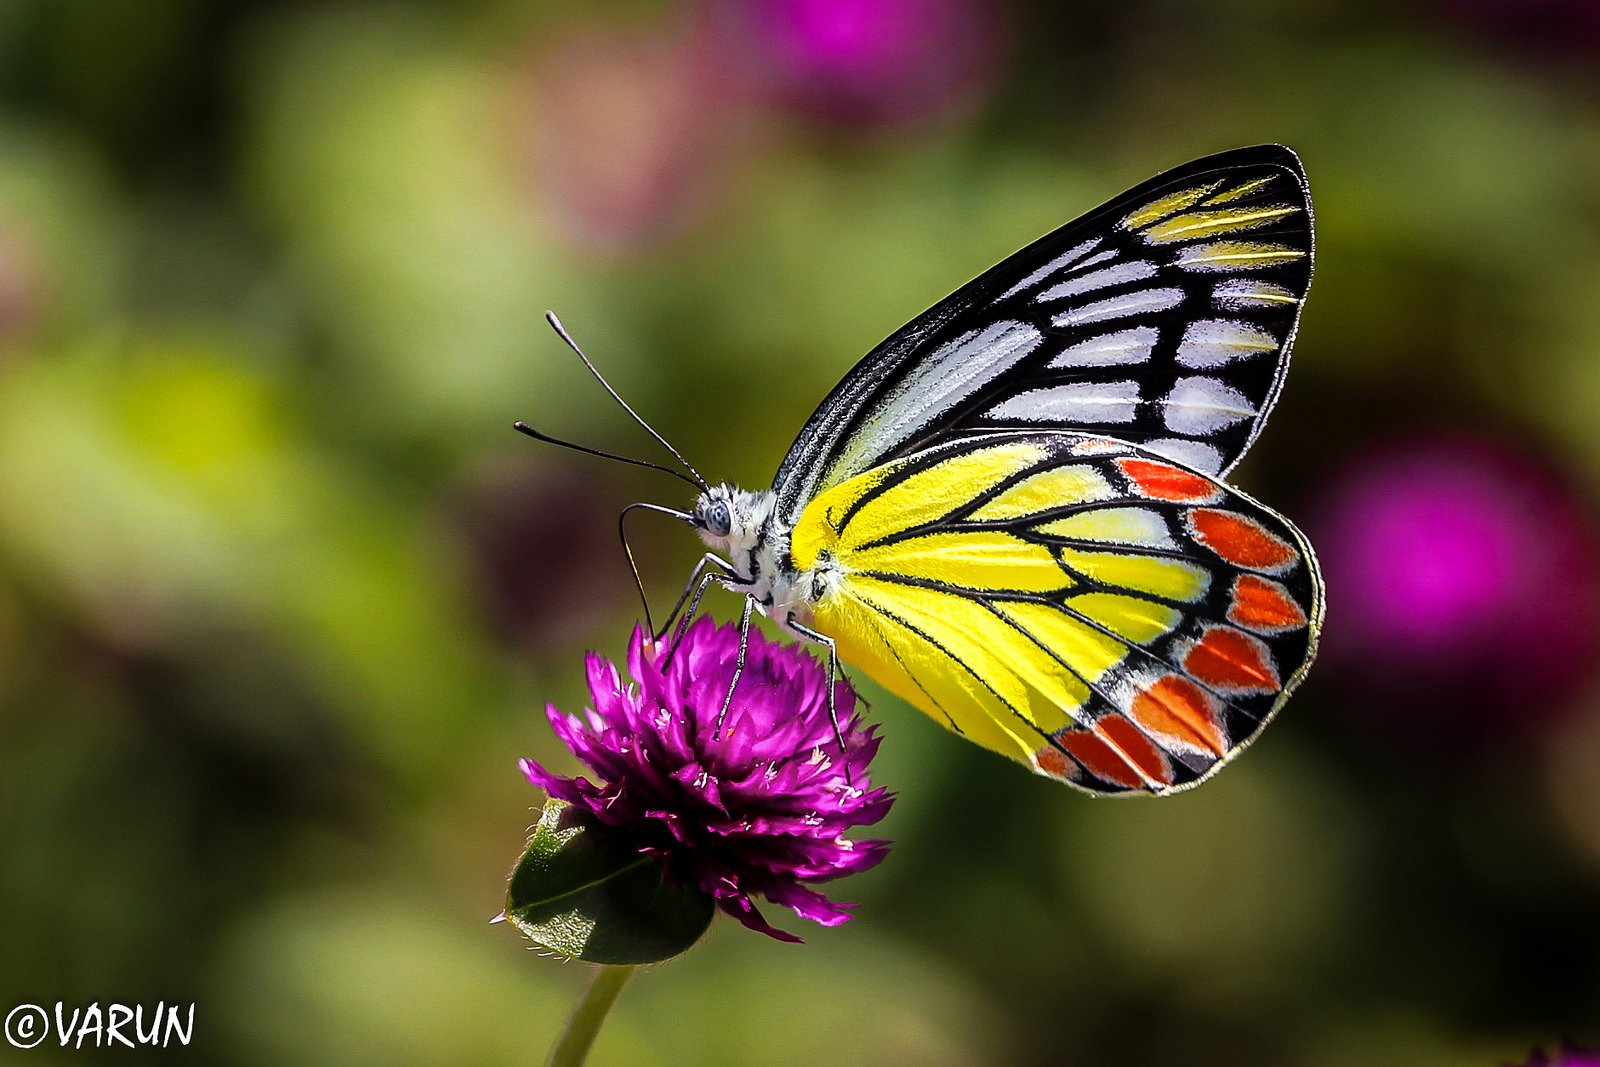 Butterfly nature insects macro zoom close-up wallpaper